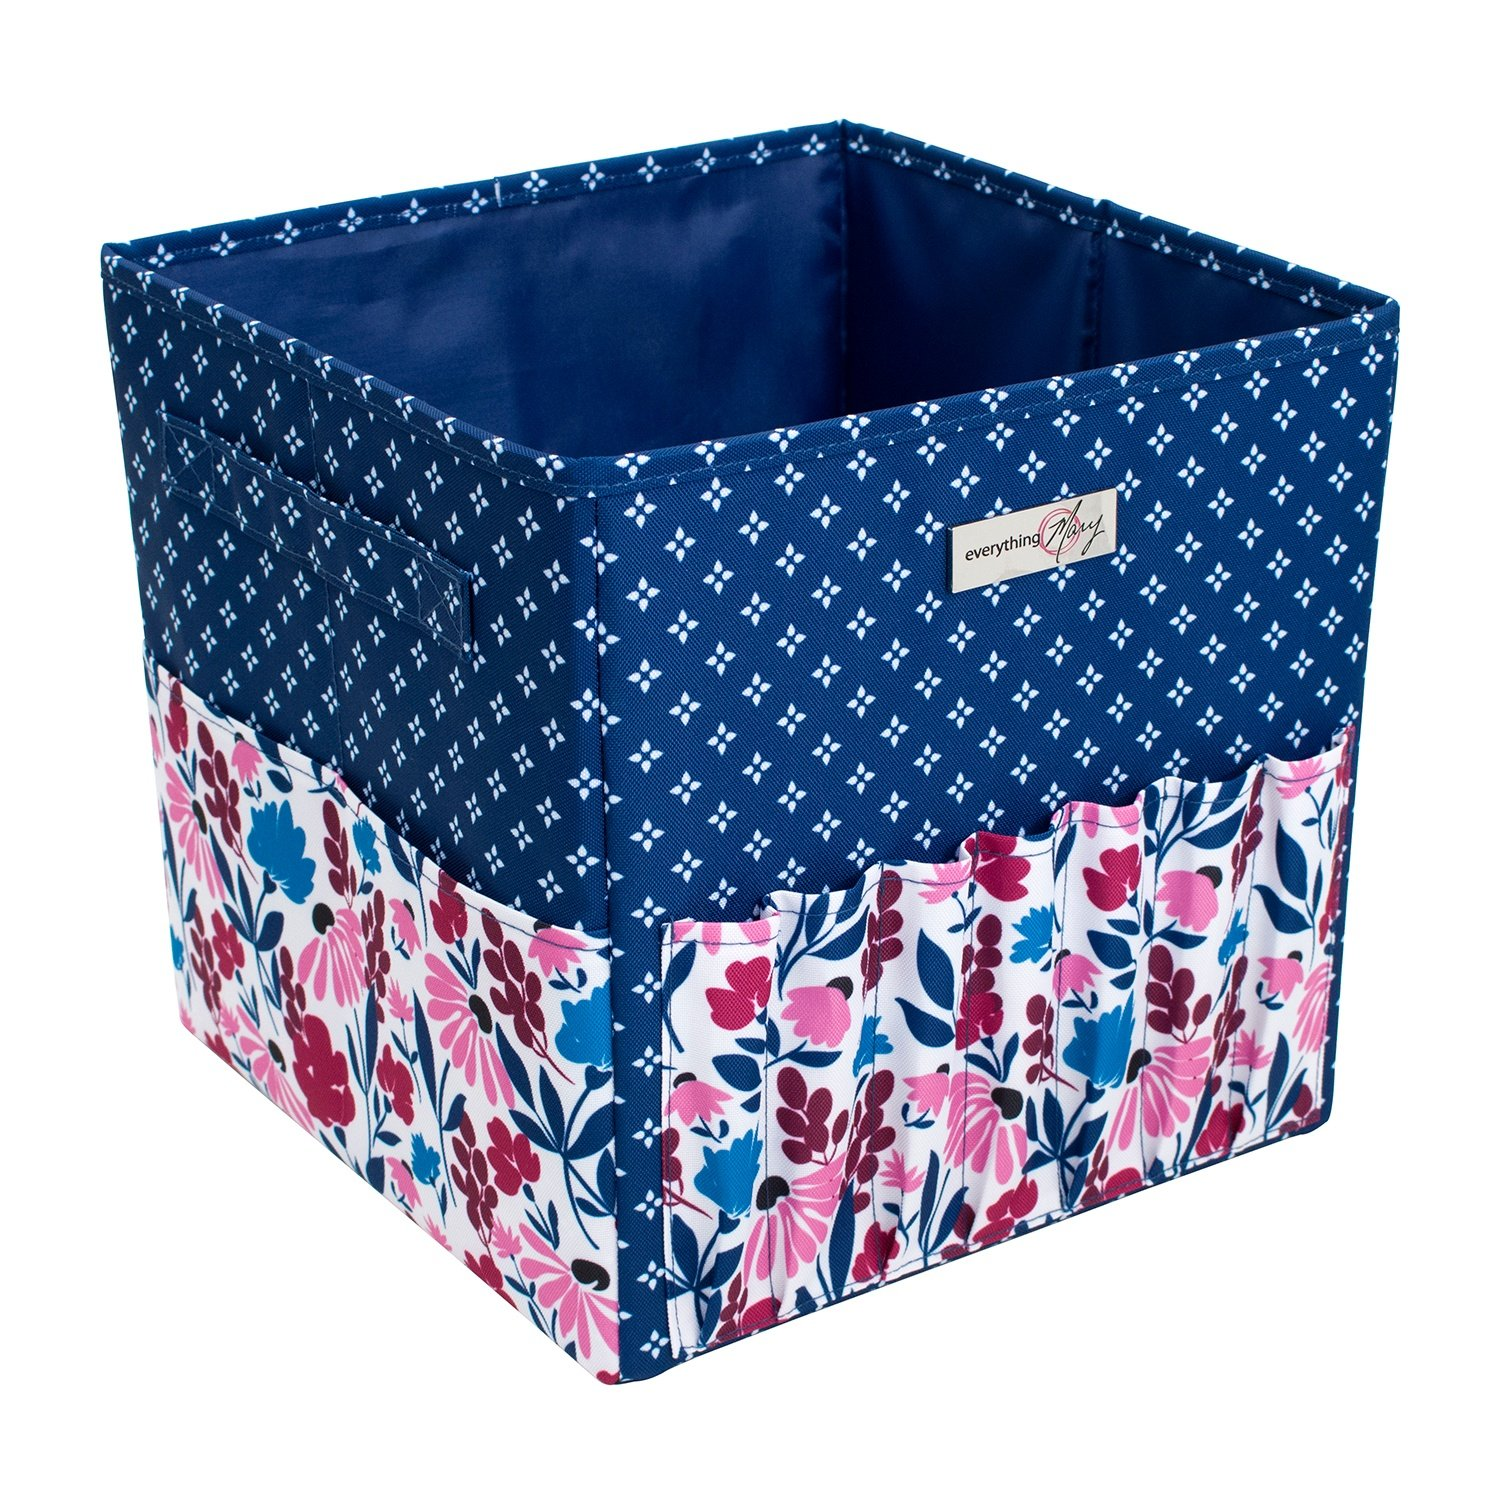 Everything Mary Square Yarn Caddy Blue//Pink Floral 28 x 28 x 28cm EVM11101-1